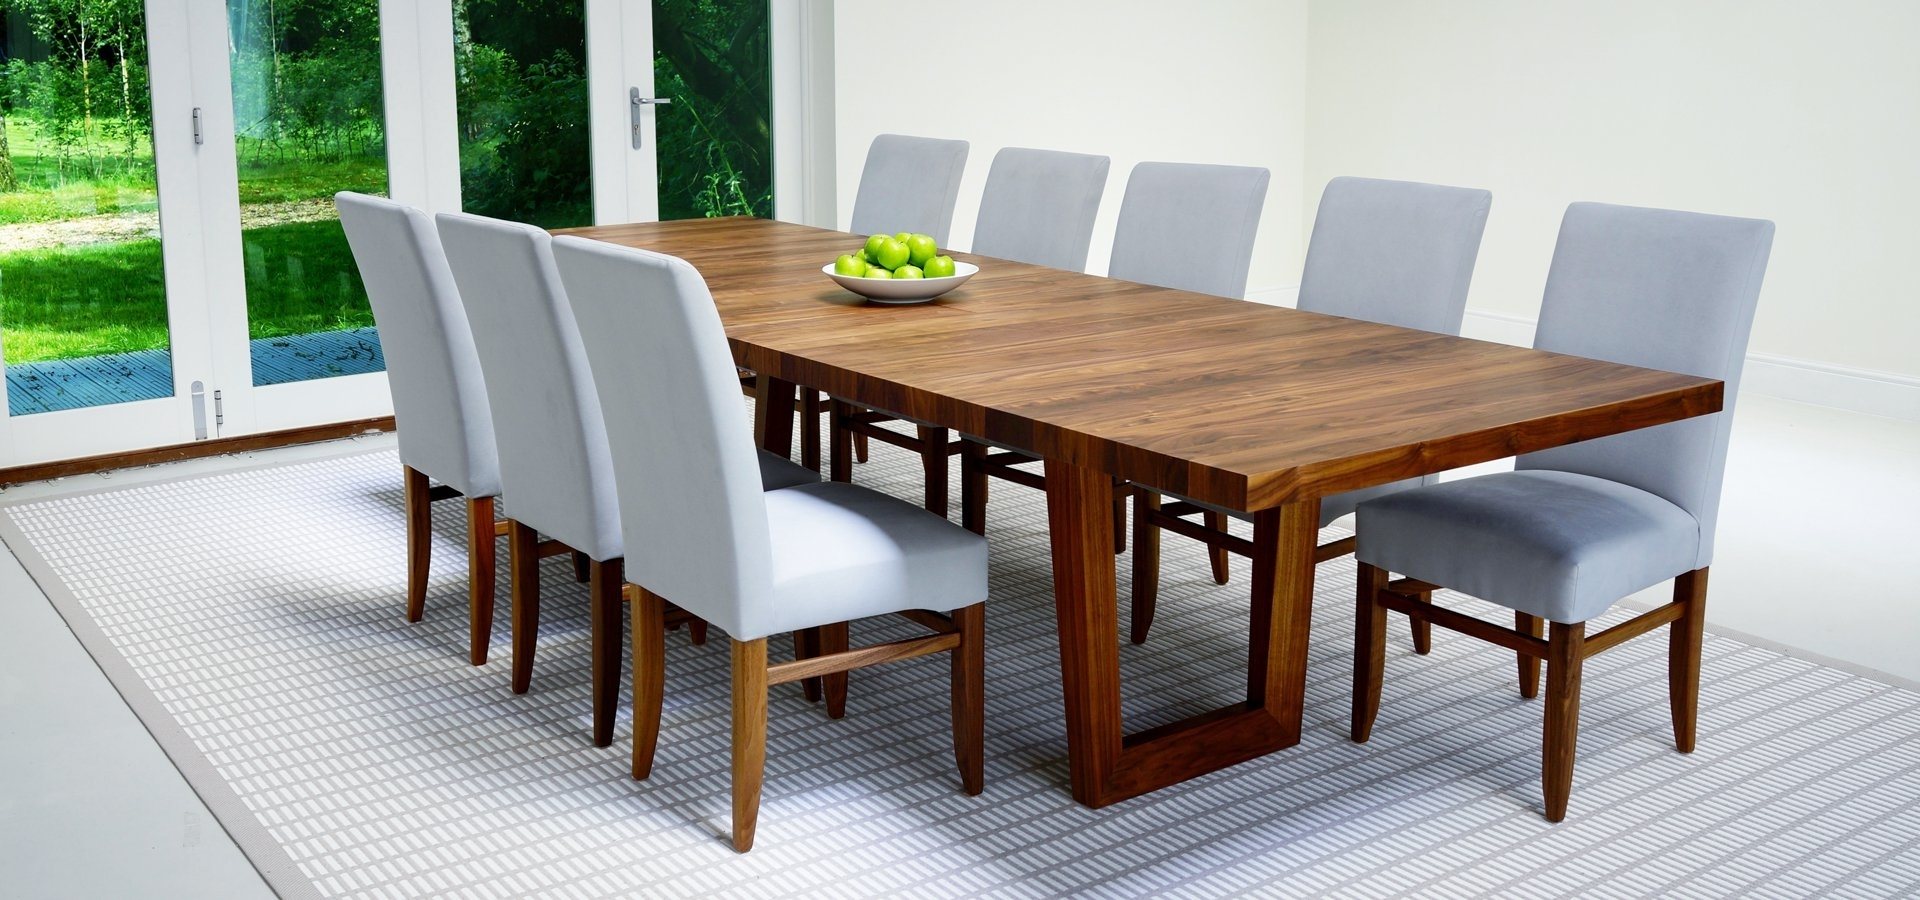 Extending Dining Table Sets – Castrophotos Intended For Most Popular Extending Dining Room Tables And Chairs (View 2 of 25)